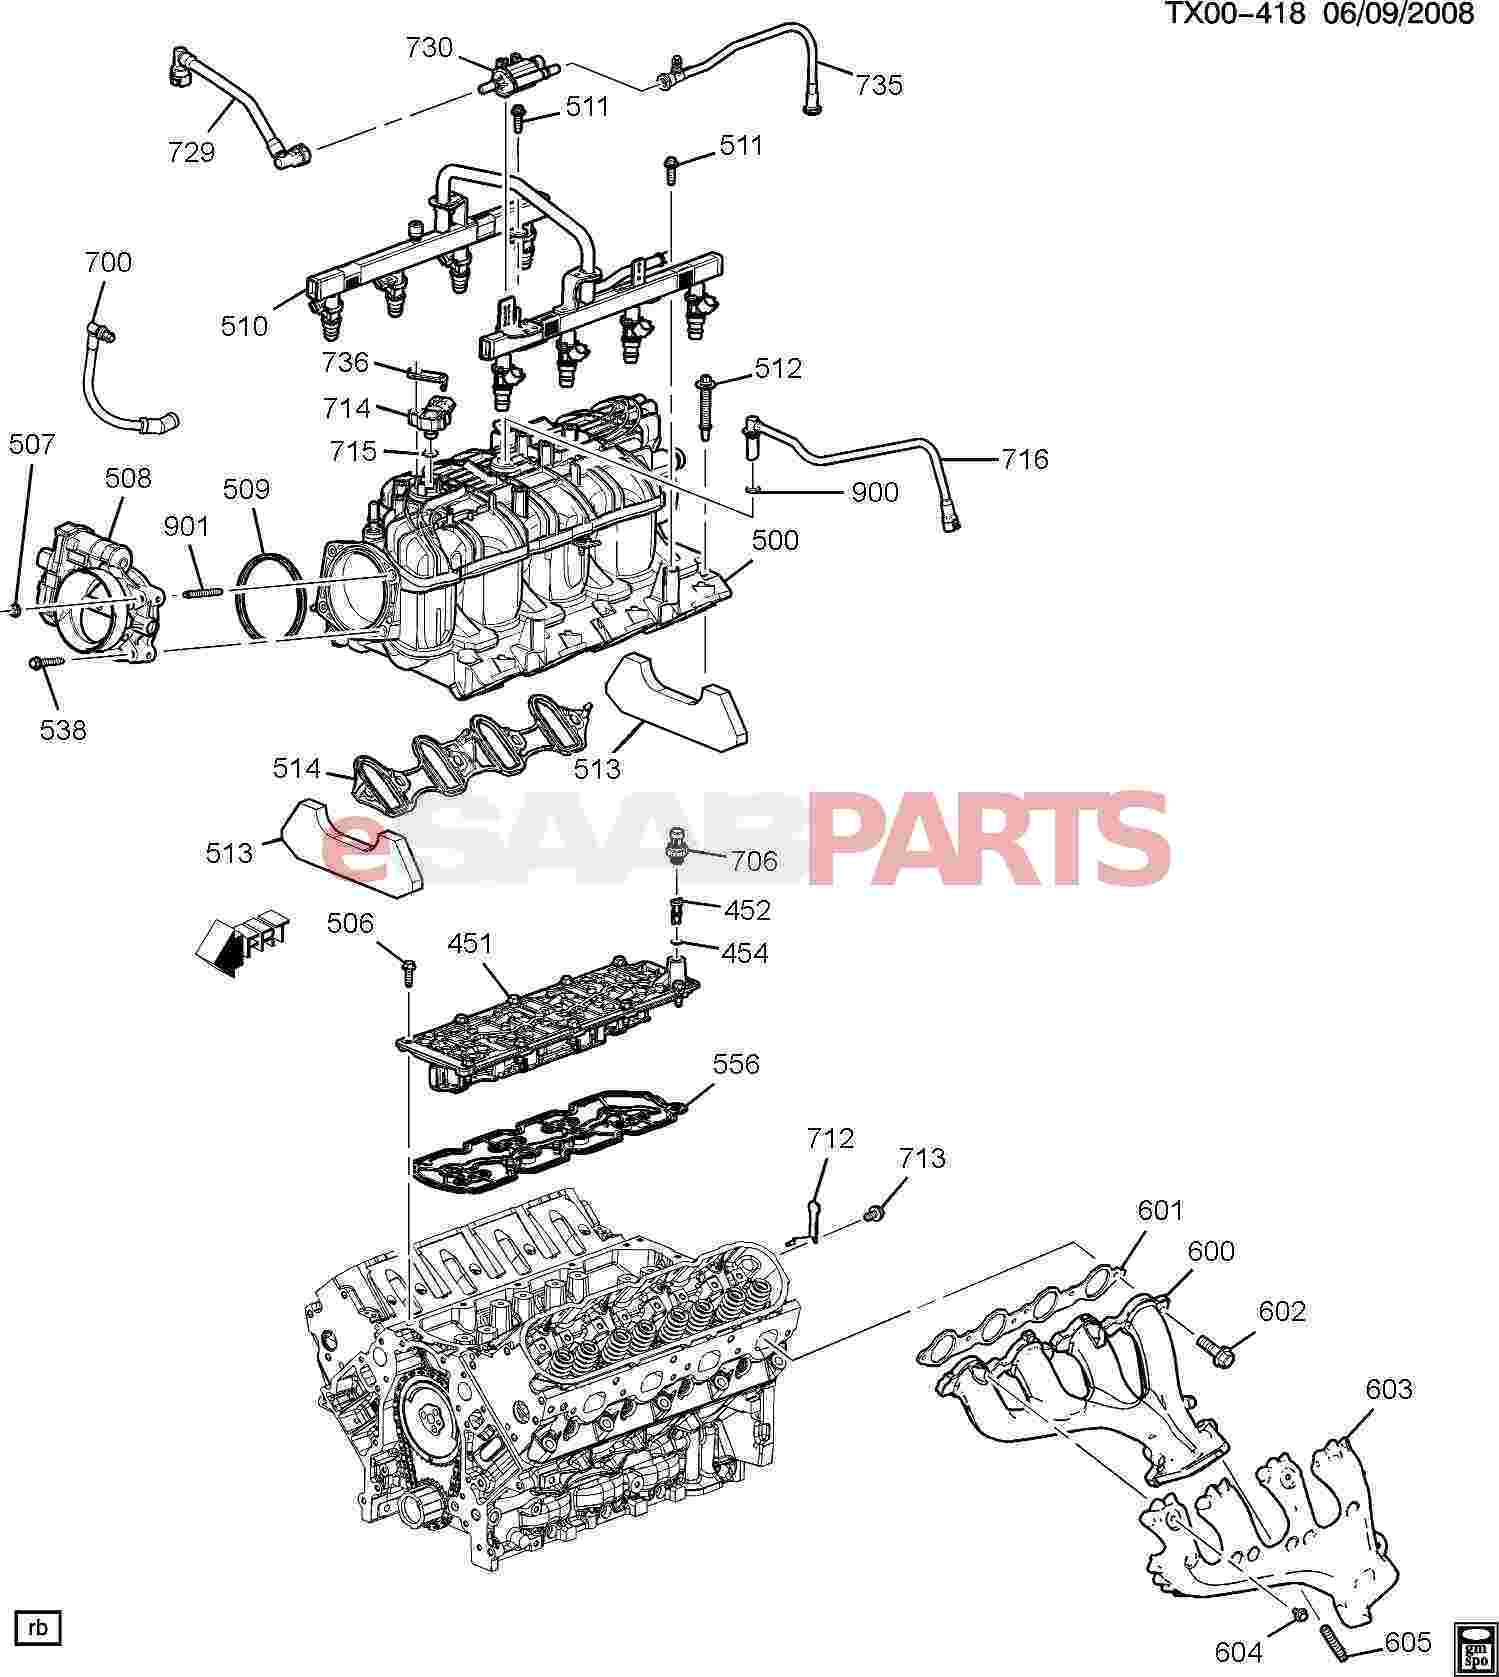 Subaru Ea82 Turbo Wiring Harness. Subaru. Auto Wiring Diagram